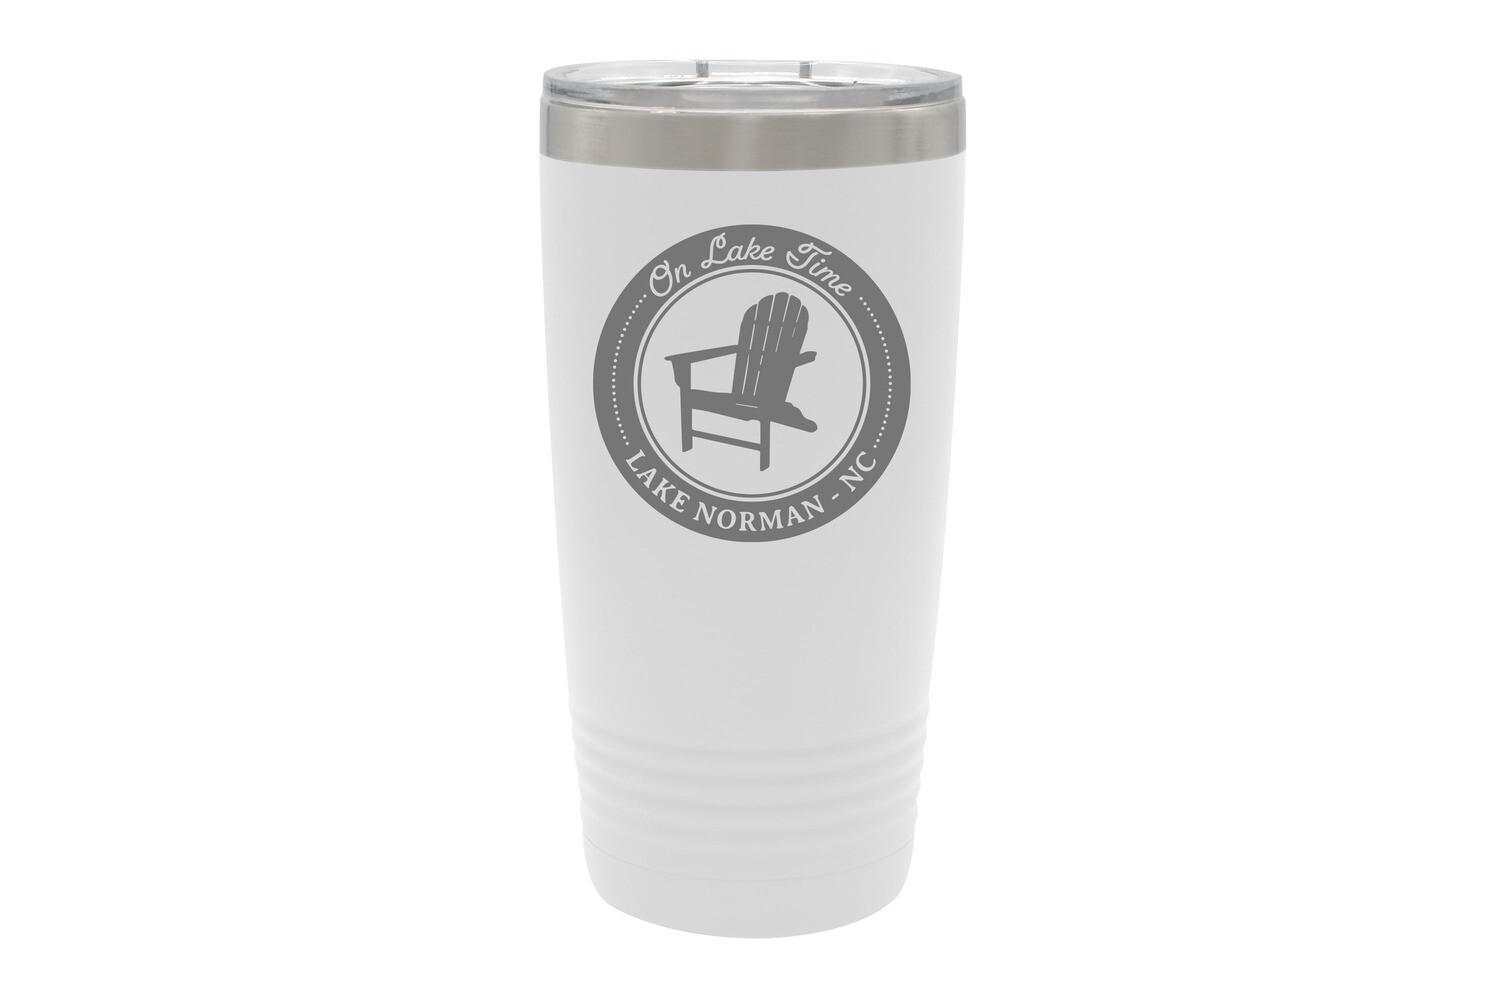 On Lake Time w/Chair & Customized Location Insulated Tumbler 20 oz